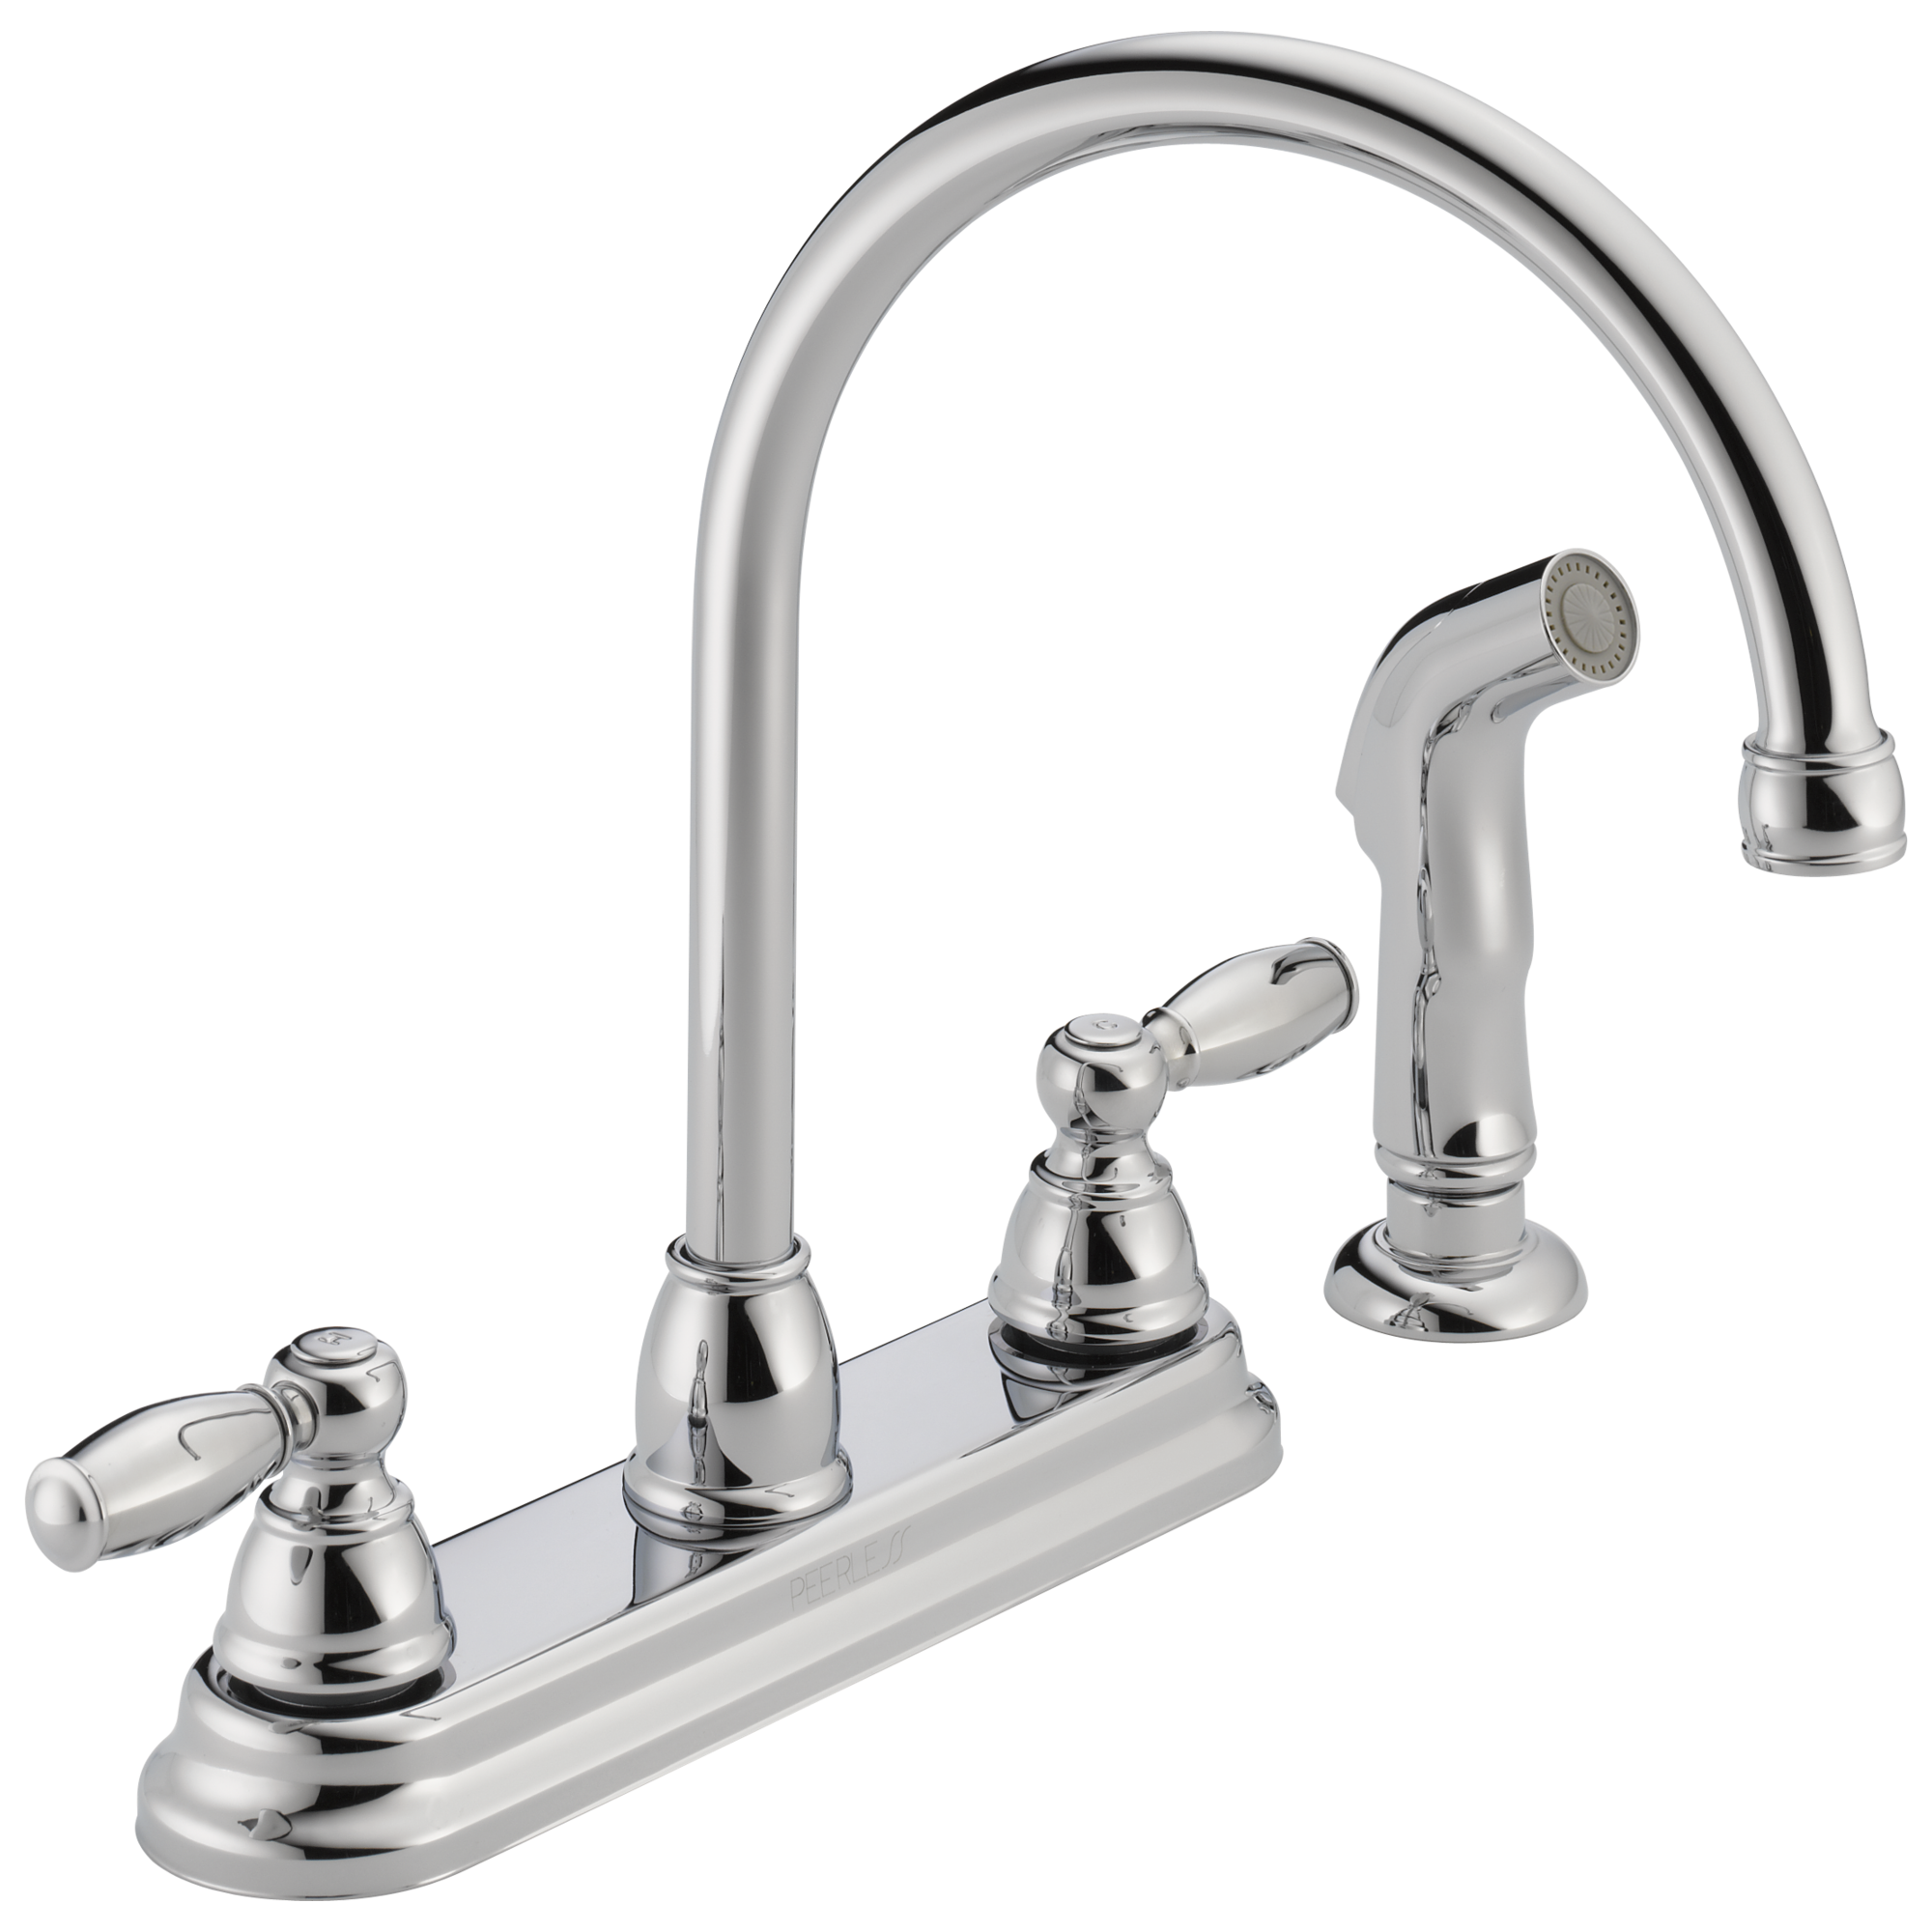 two handle faucets: